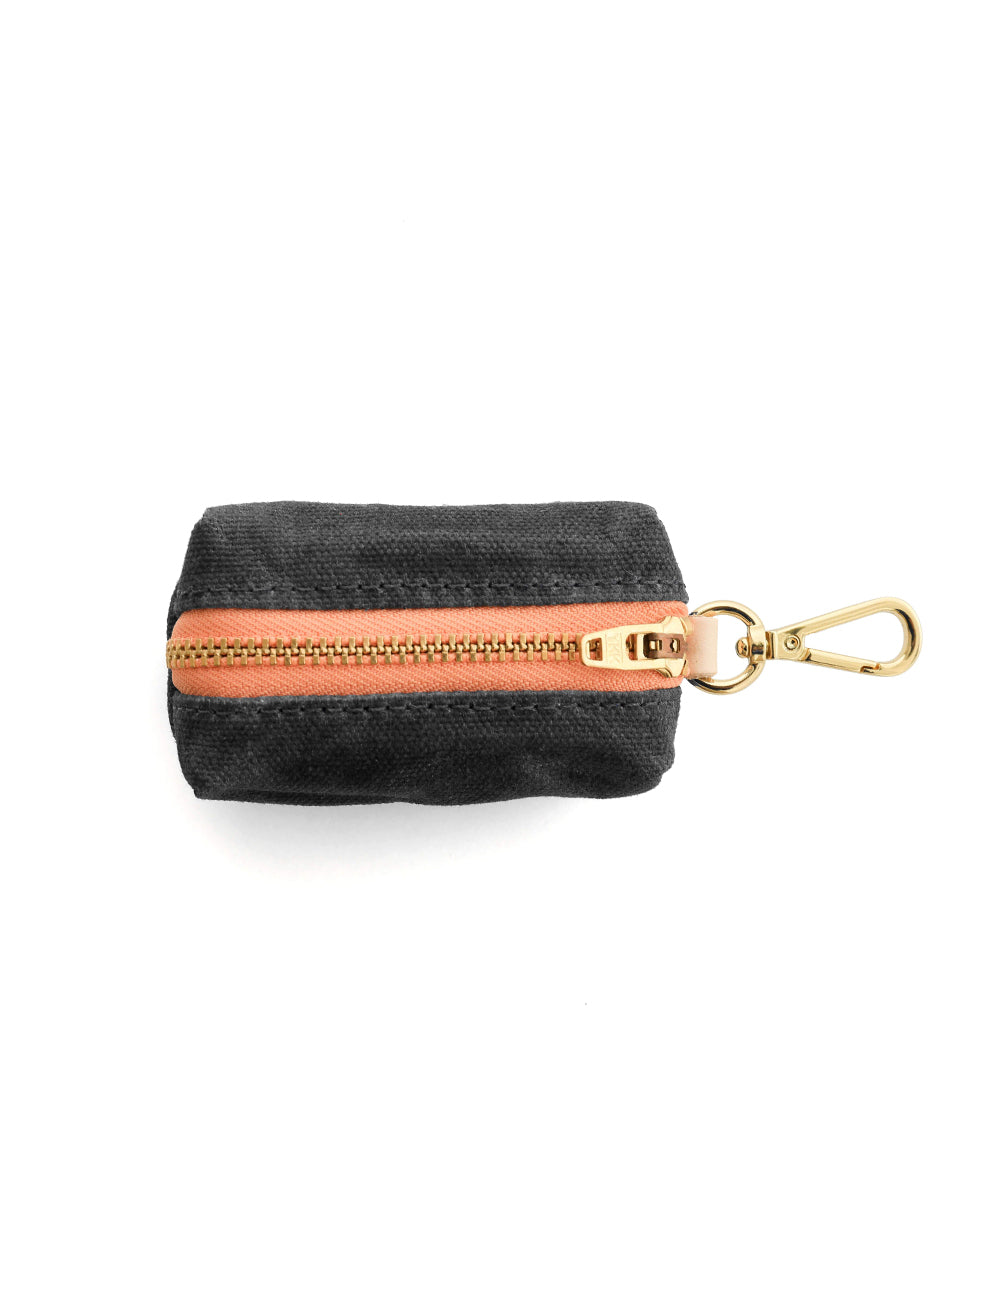 Onyx Waxed Canvas Leash Bag